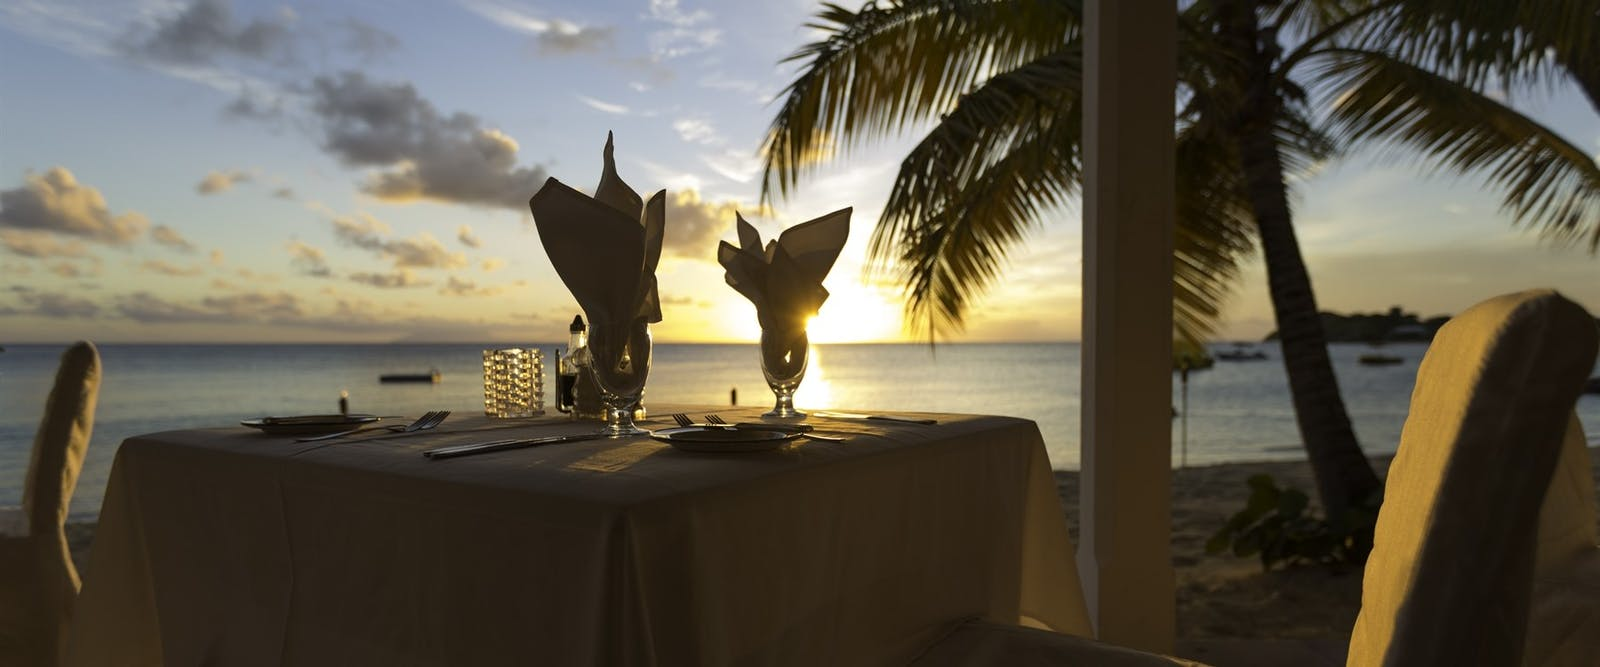 Restaurant on the Water's Edge at Curtain Bluff, Antigua